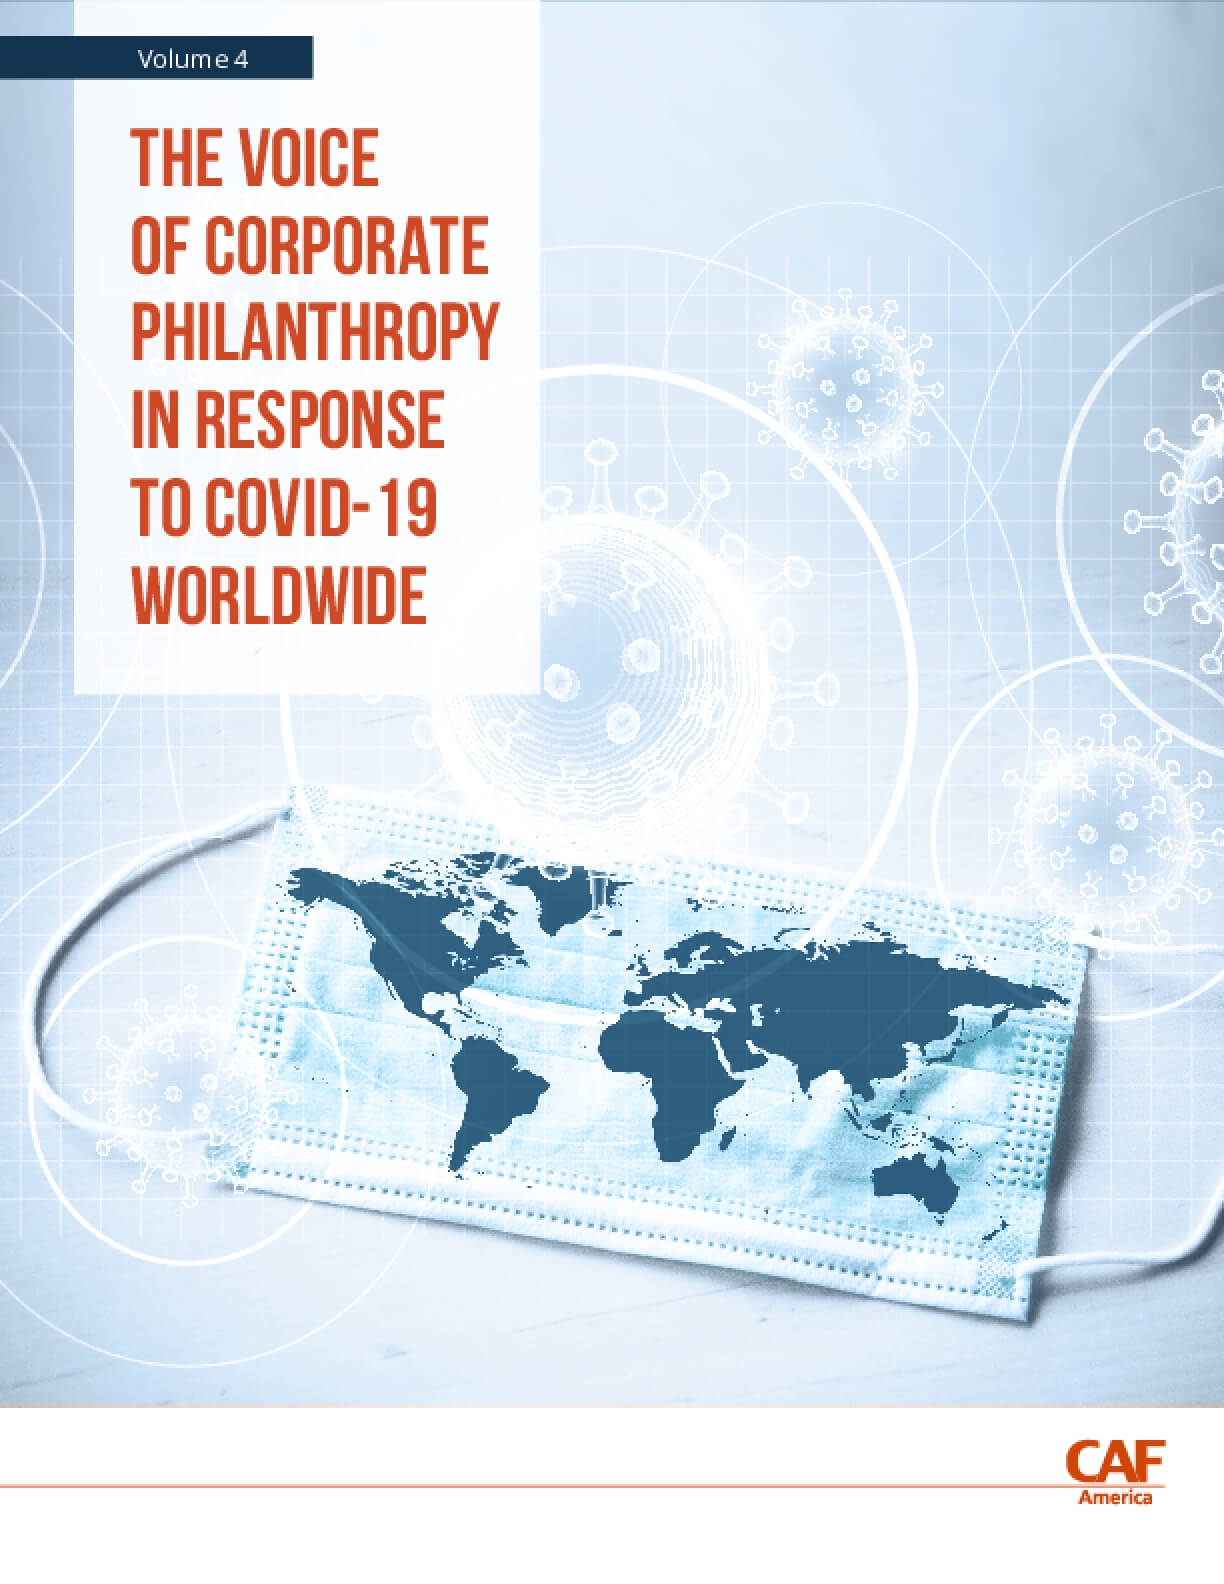 The Voice of Corporate Philanthropy in Response to COVID-19 Worldwide, Volume 4